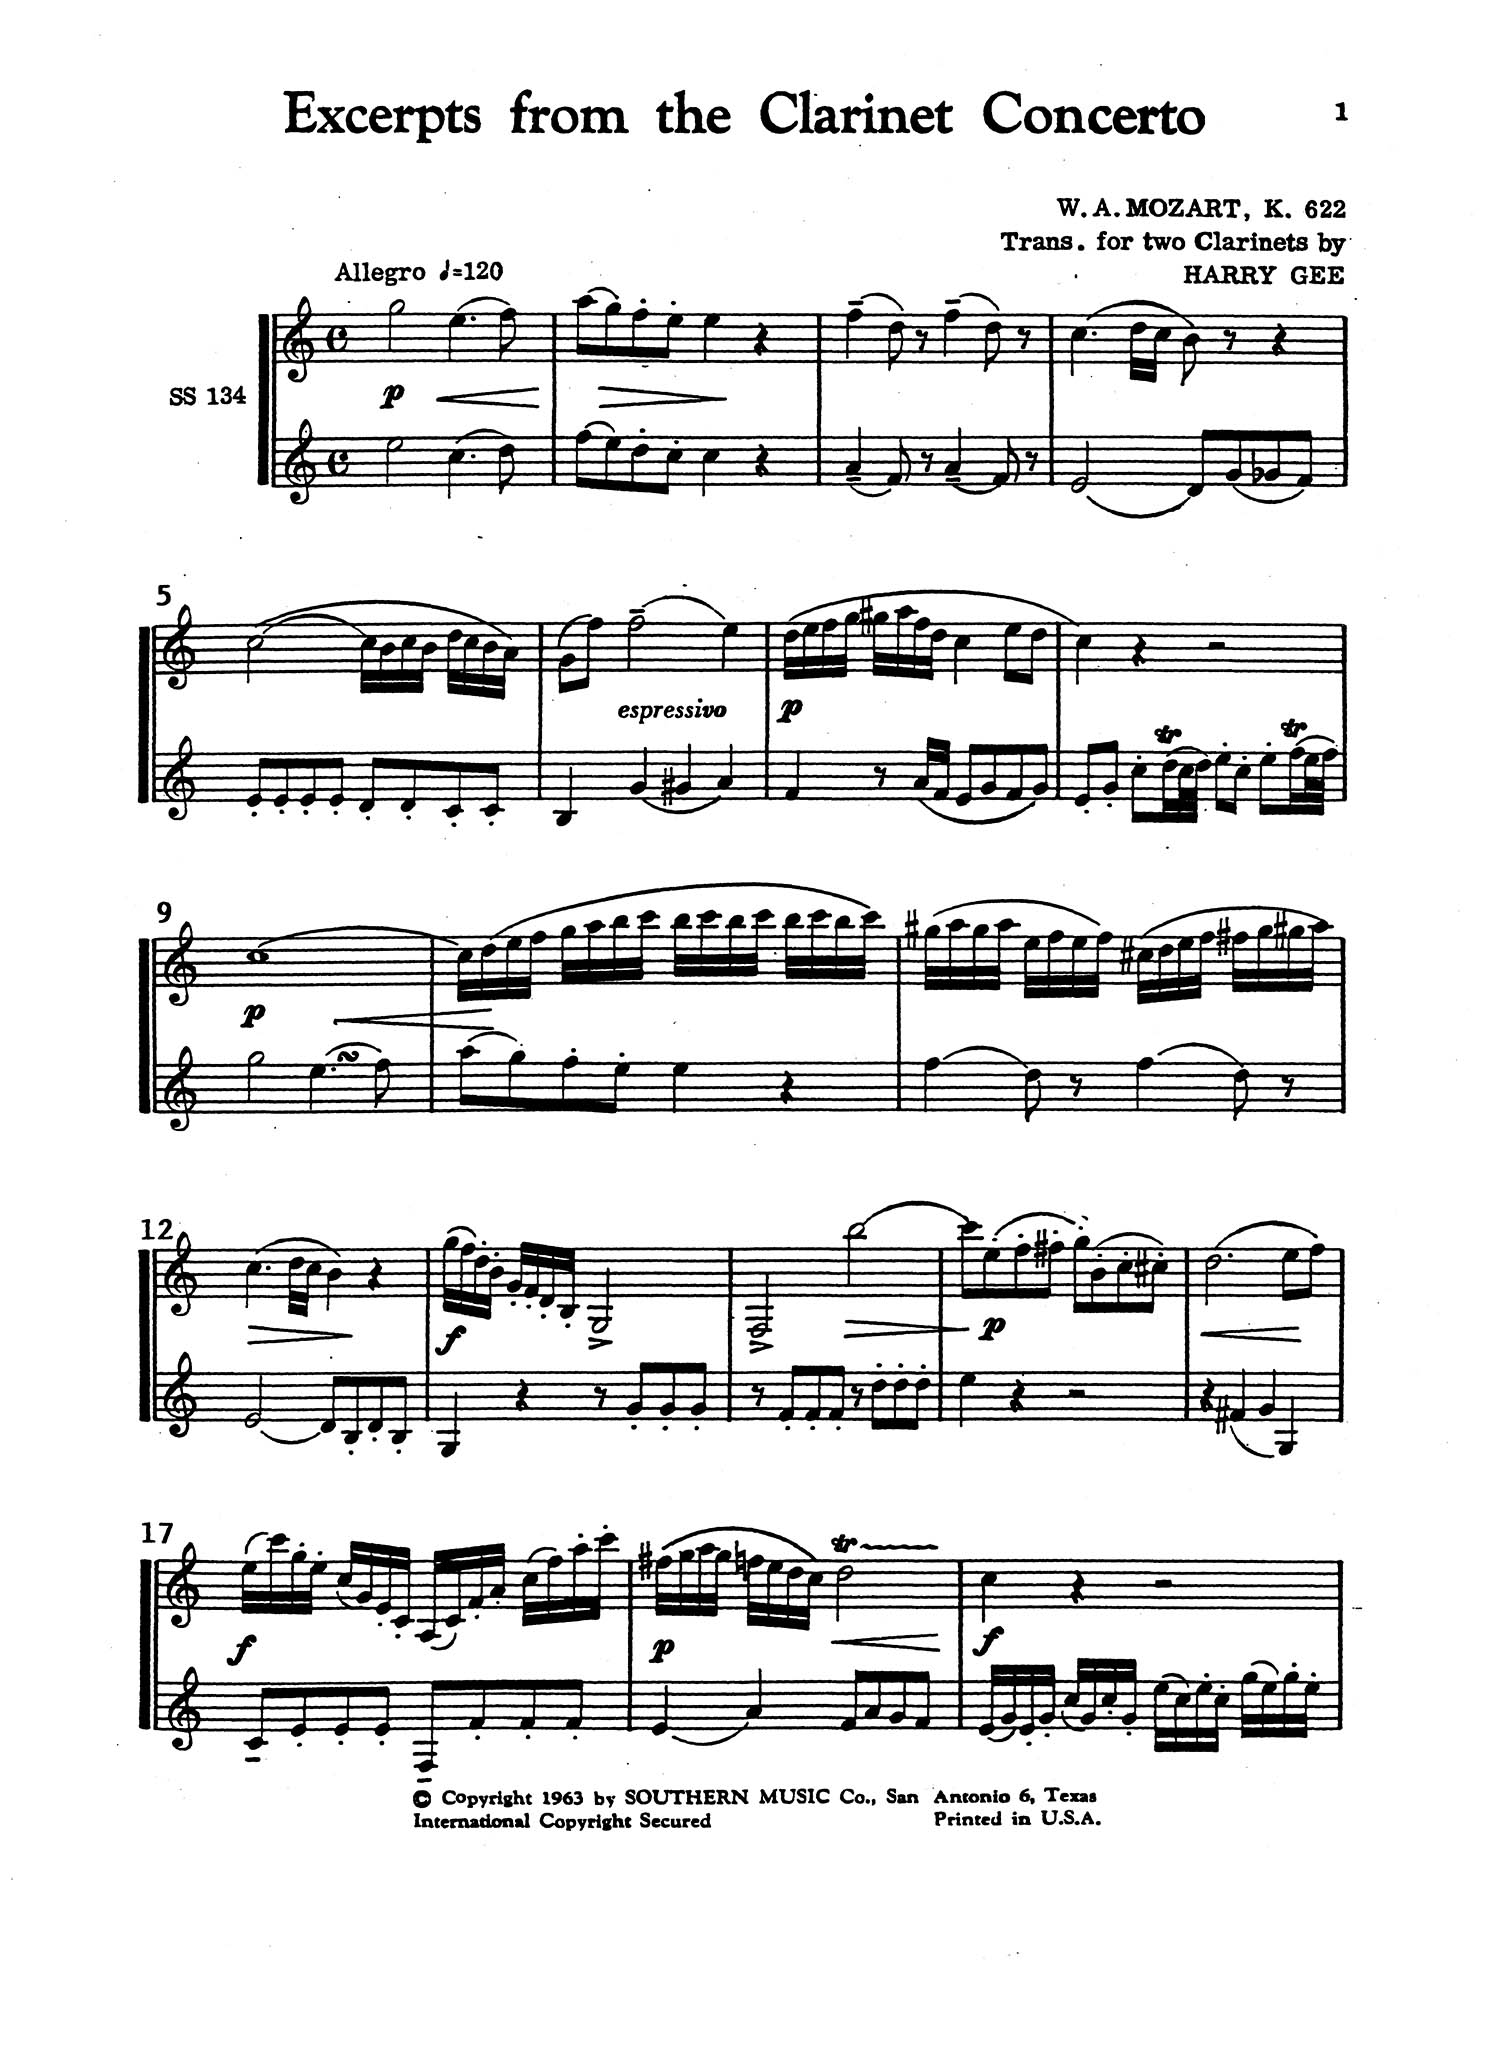 Clarinet Concerto in A Major, K. 622 for 2 Clarinets - Movement 1